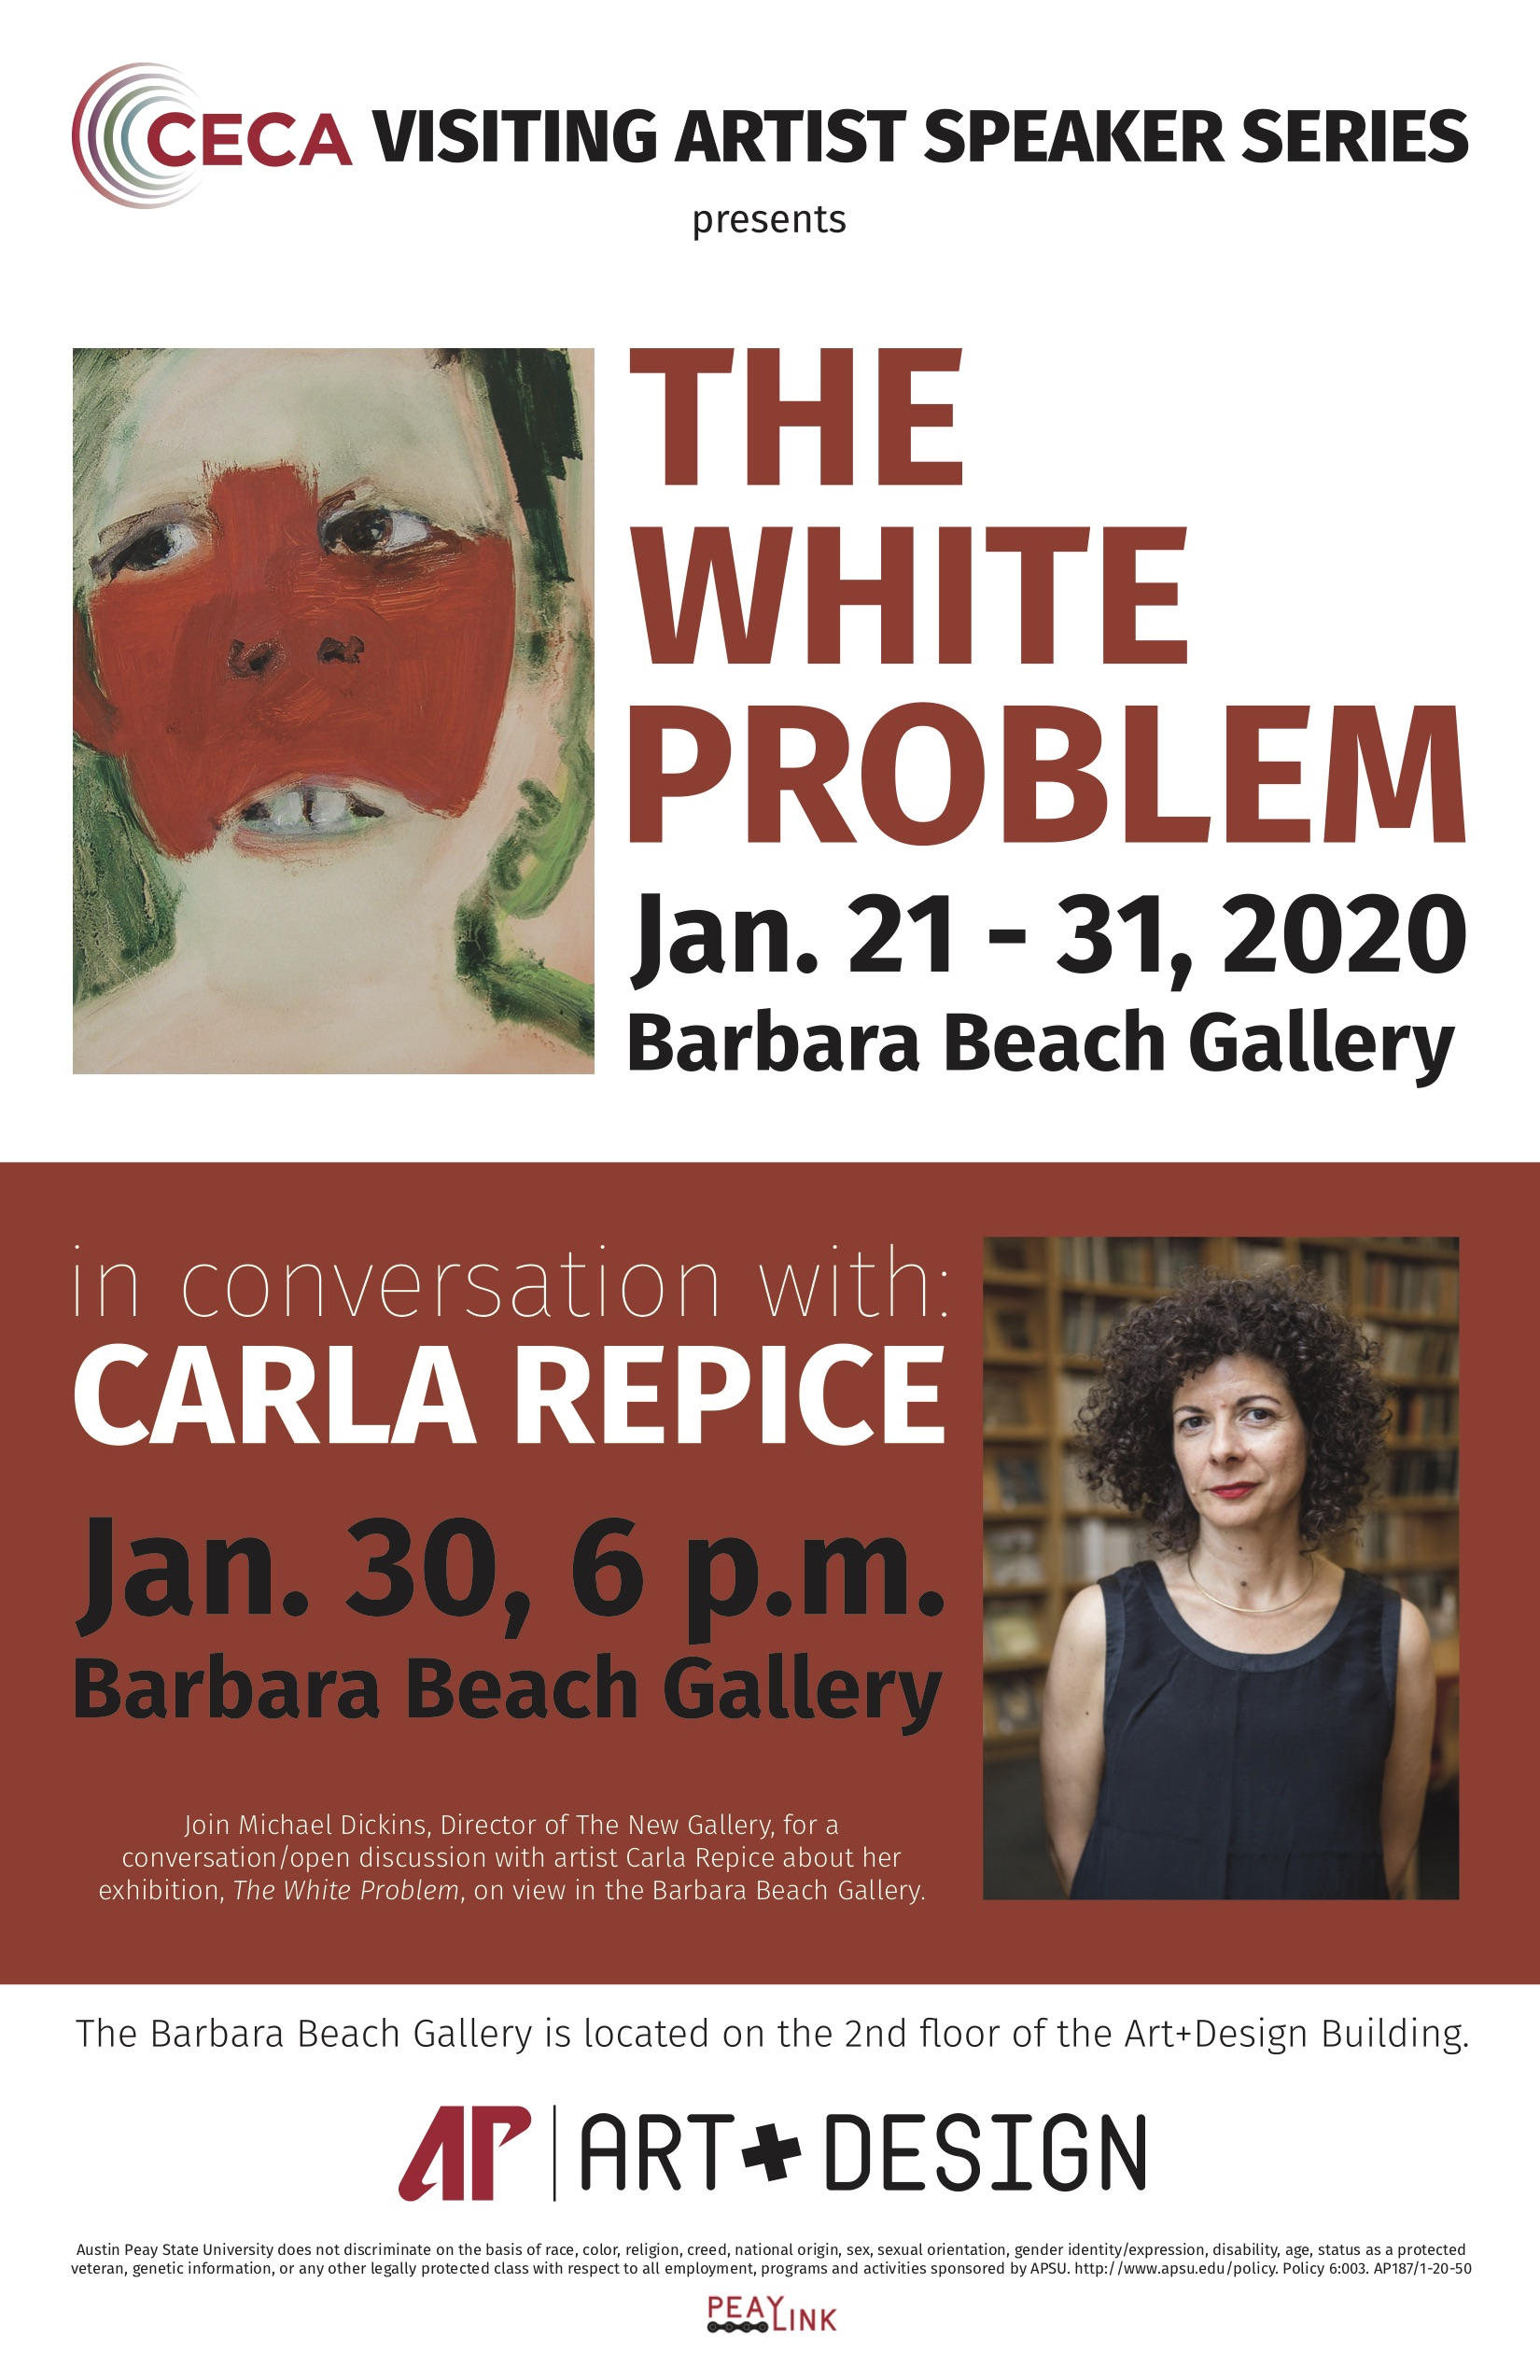 The Department of Art + Design, with support from the APSU Center of Excellence for the Creative Arts (CECA), welcomes artist Carla Repice to campus for a one-on-one conversation with Gallery Director Michael Dickins at 6 p.m. Thursday, Jan. 30, at the Barbara Beach Gallery.